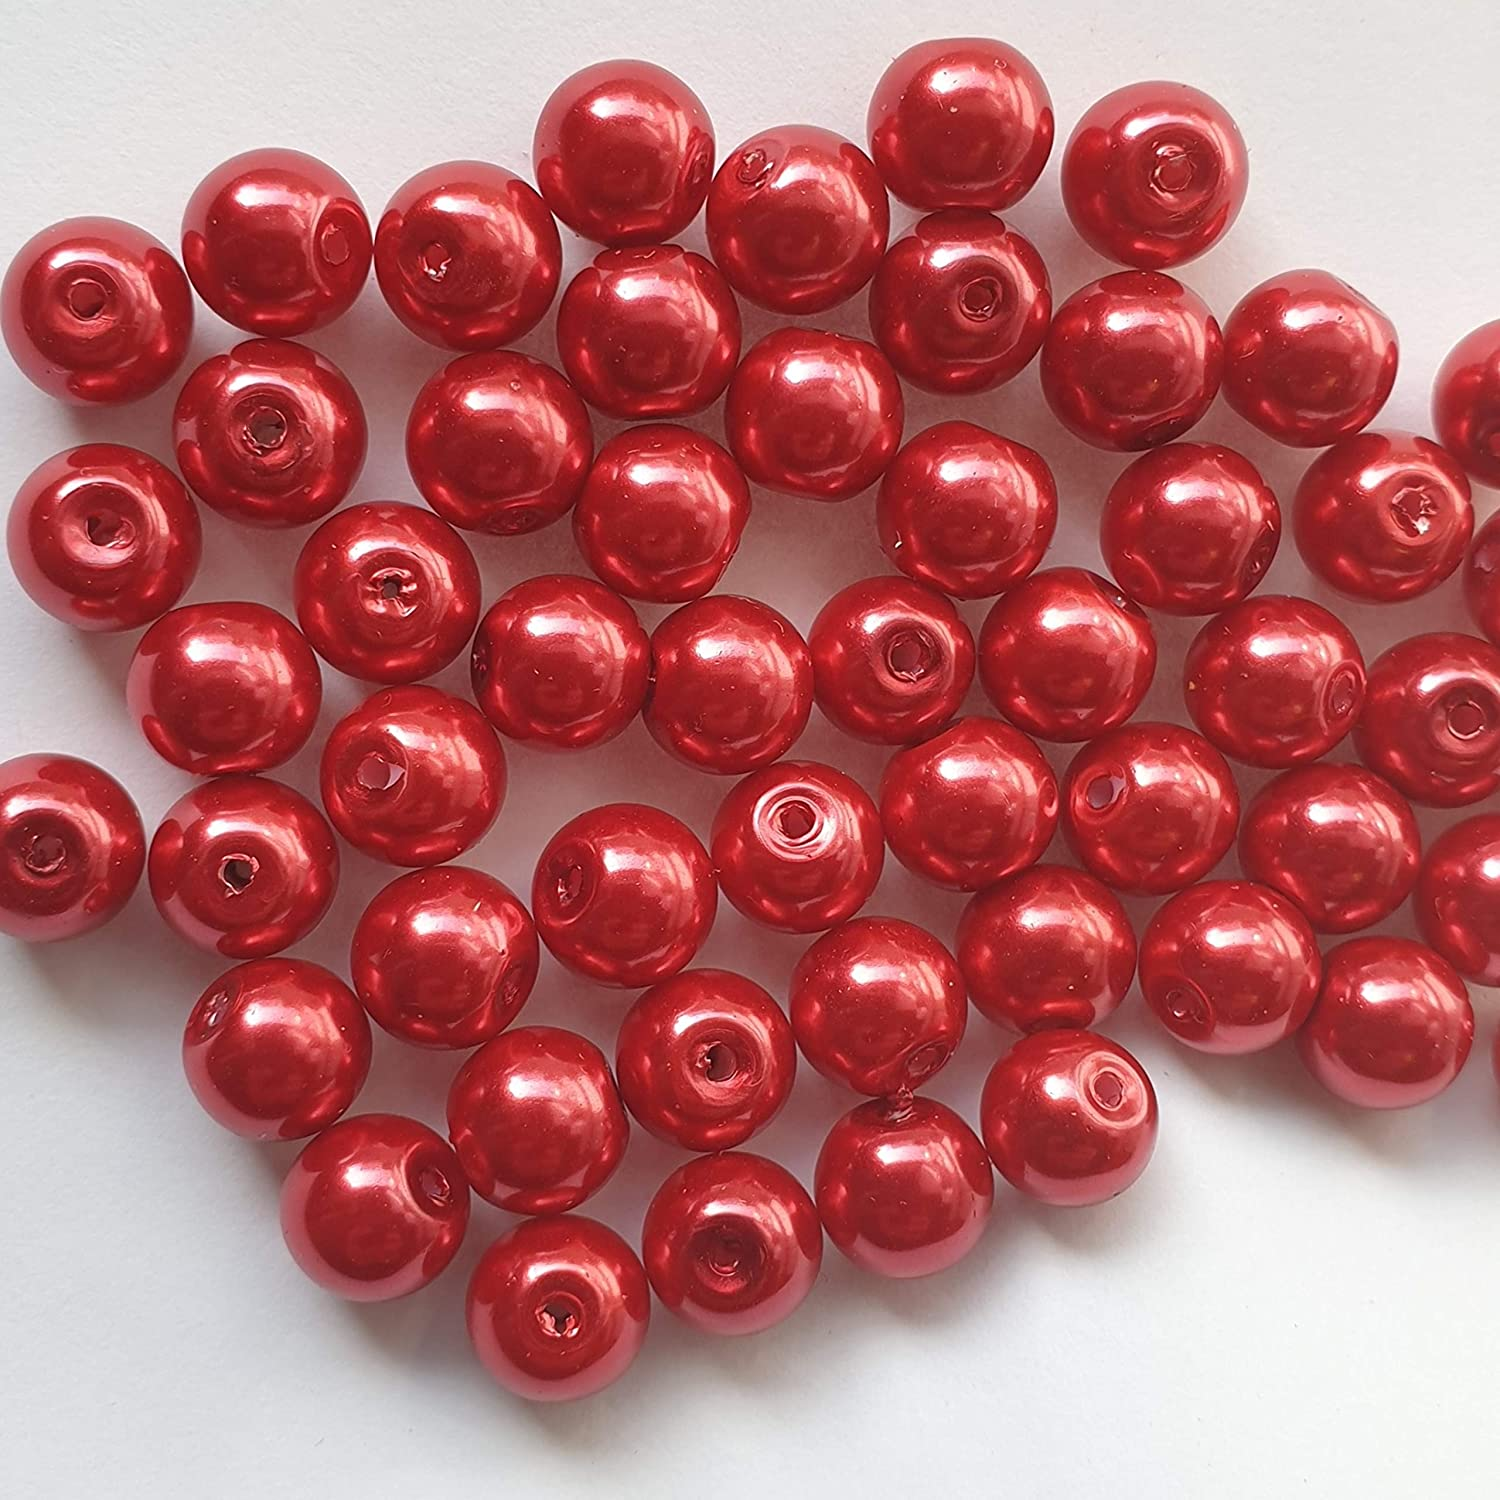 Beads are not stuck. loose spacer beads Bright Red A0930 NEW PACKAGING k2-accessories /® 200 pieces 4mm Glass Pearl Beads Tiny Beads